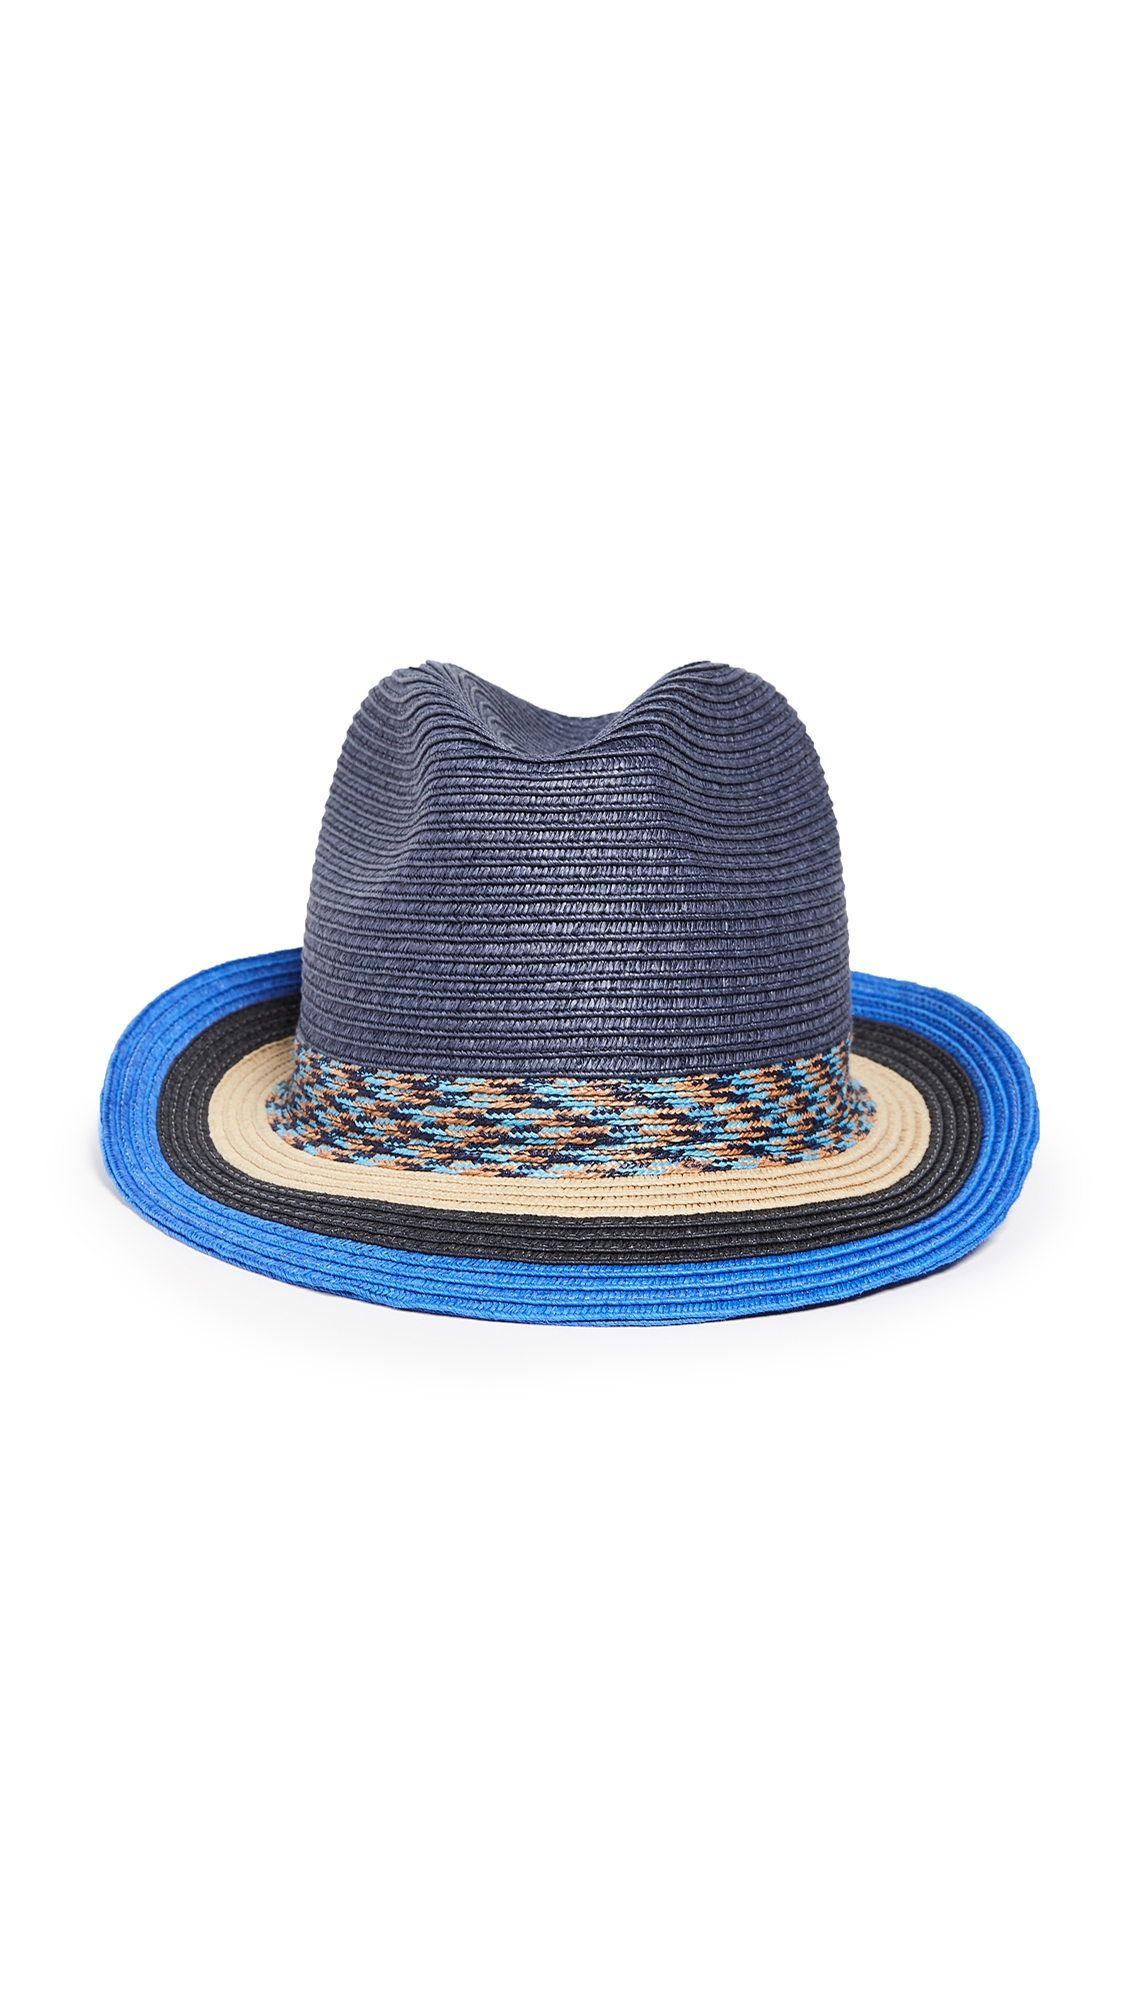 807c7521c4764 Paul Smith Men s Striped-Brim Straw Fedora Hat In Blue Multi